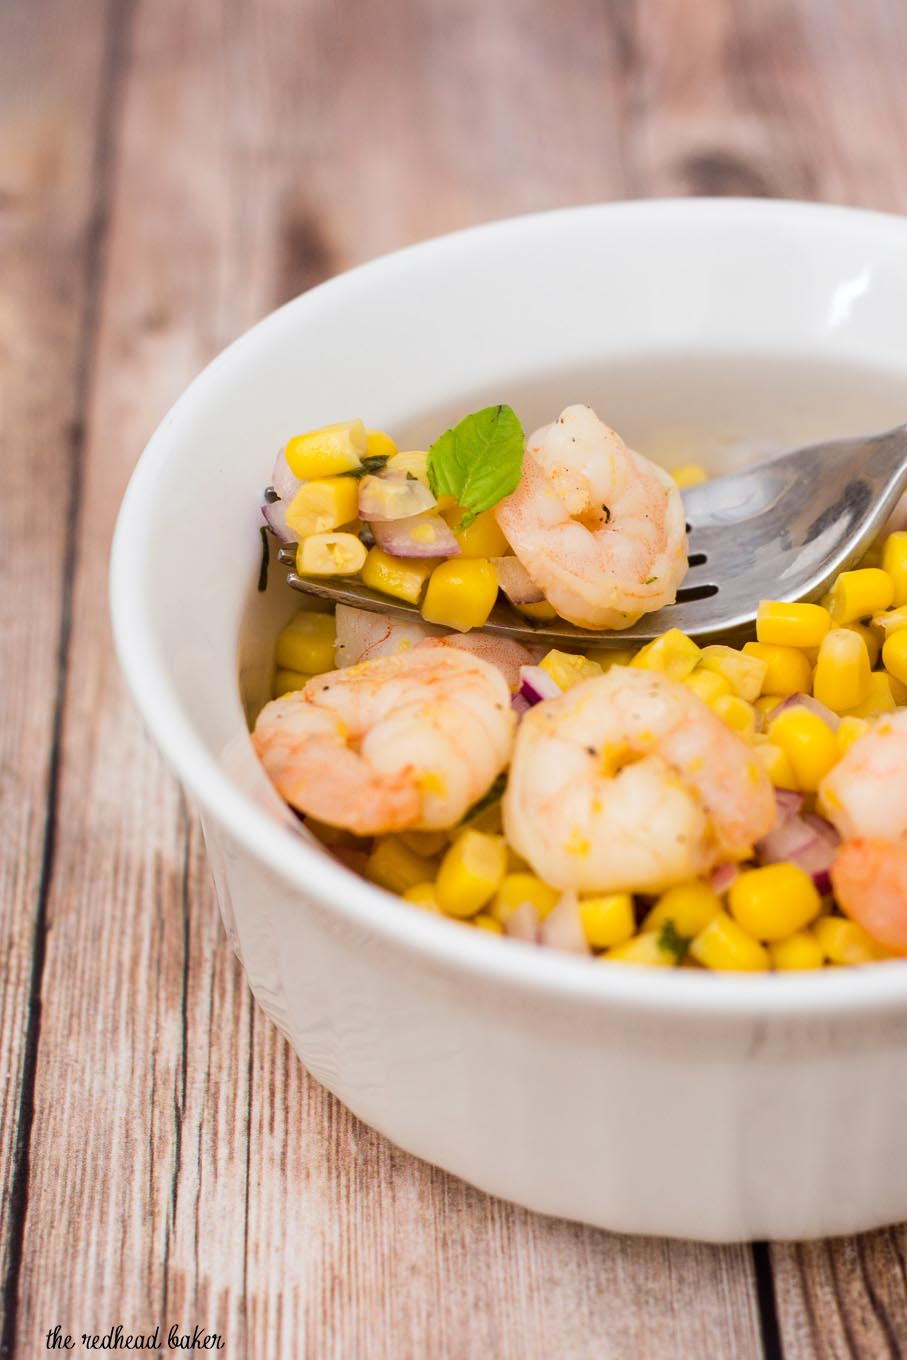 Can dinner be both easy AND healthy? Yes! Serve lemon shrimp over a salad of corn, red onion and basil with a red wine vinaigrette.